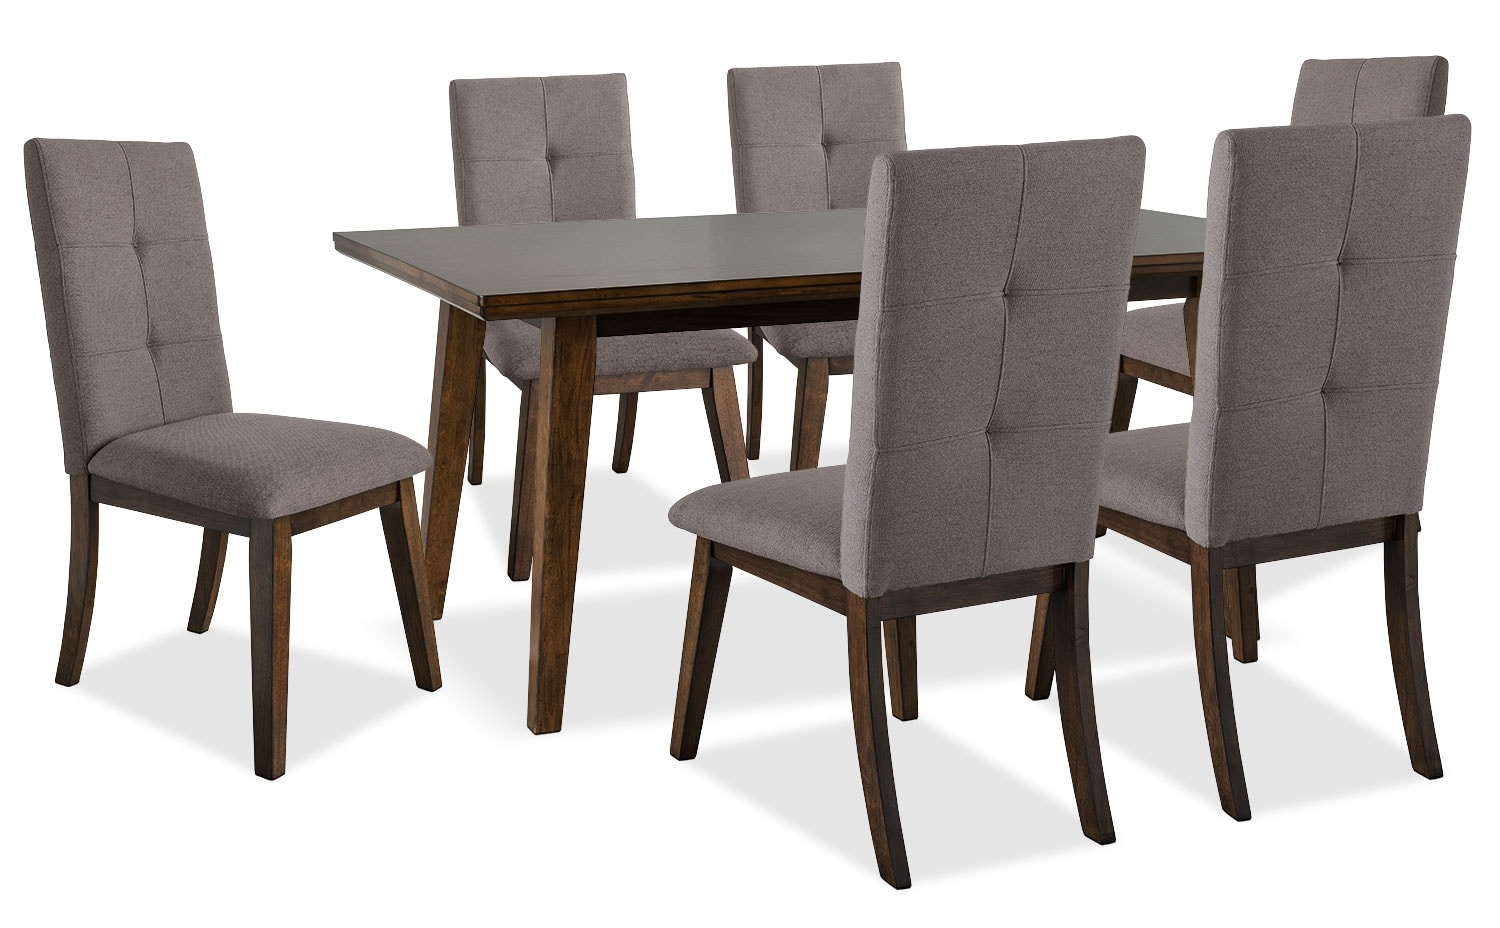 Get Free High Quality HD Wallpapers Chelsea Dining Set Dunelm